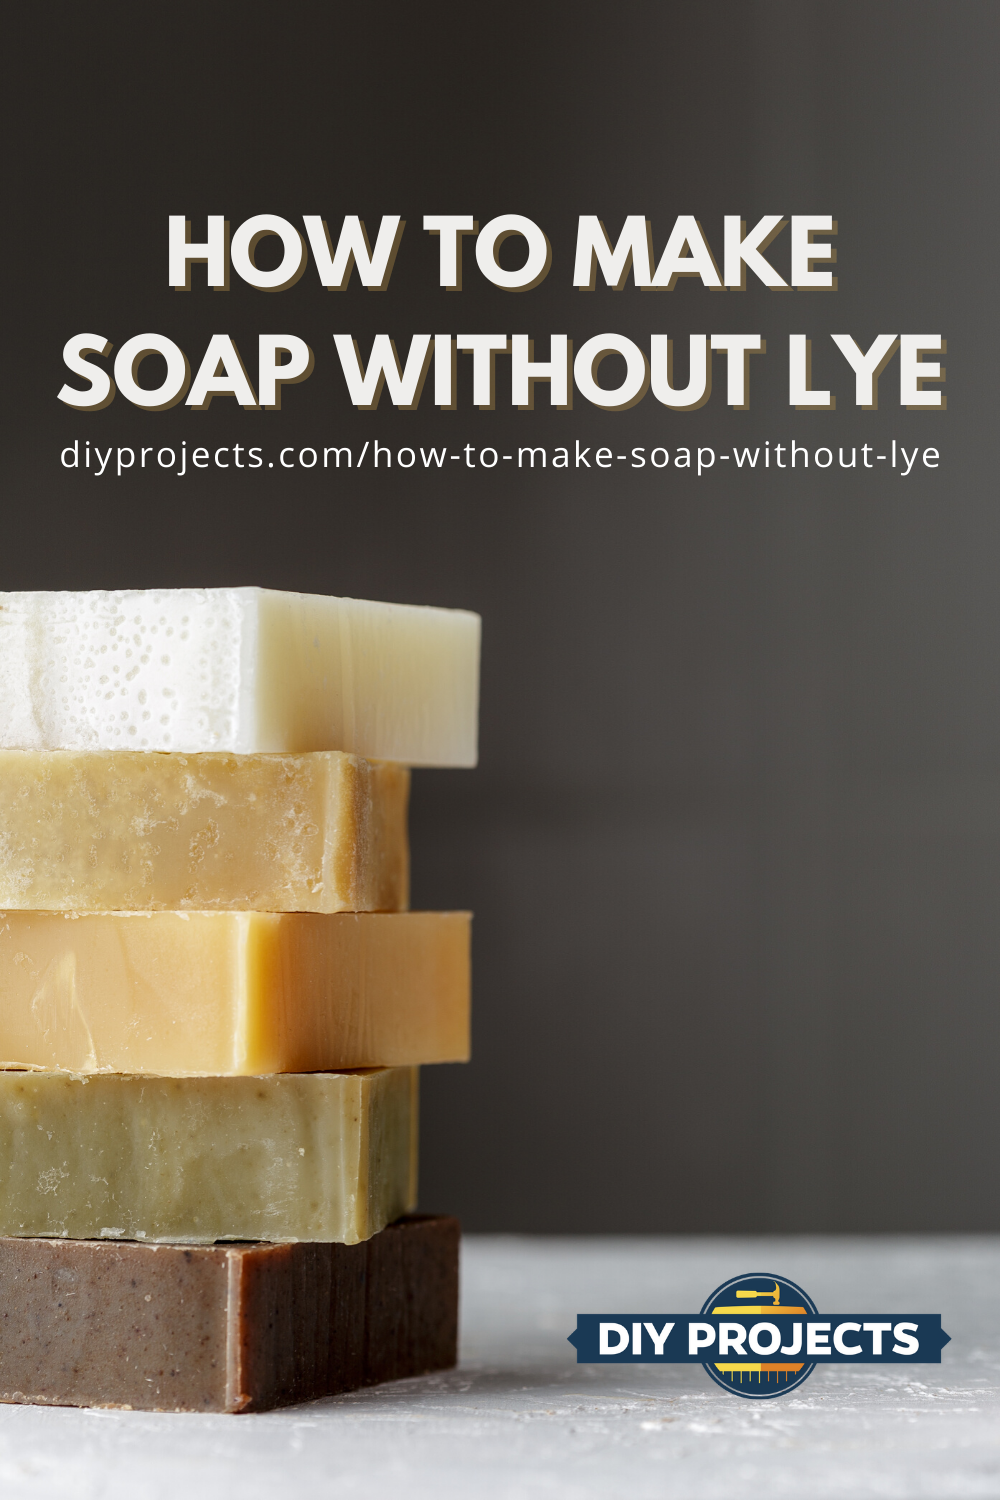 Diy Projects How To Make Soap Without Lye Soap Making Soap Making Recipes Diy Soap Recipe